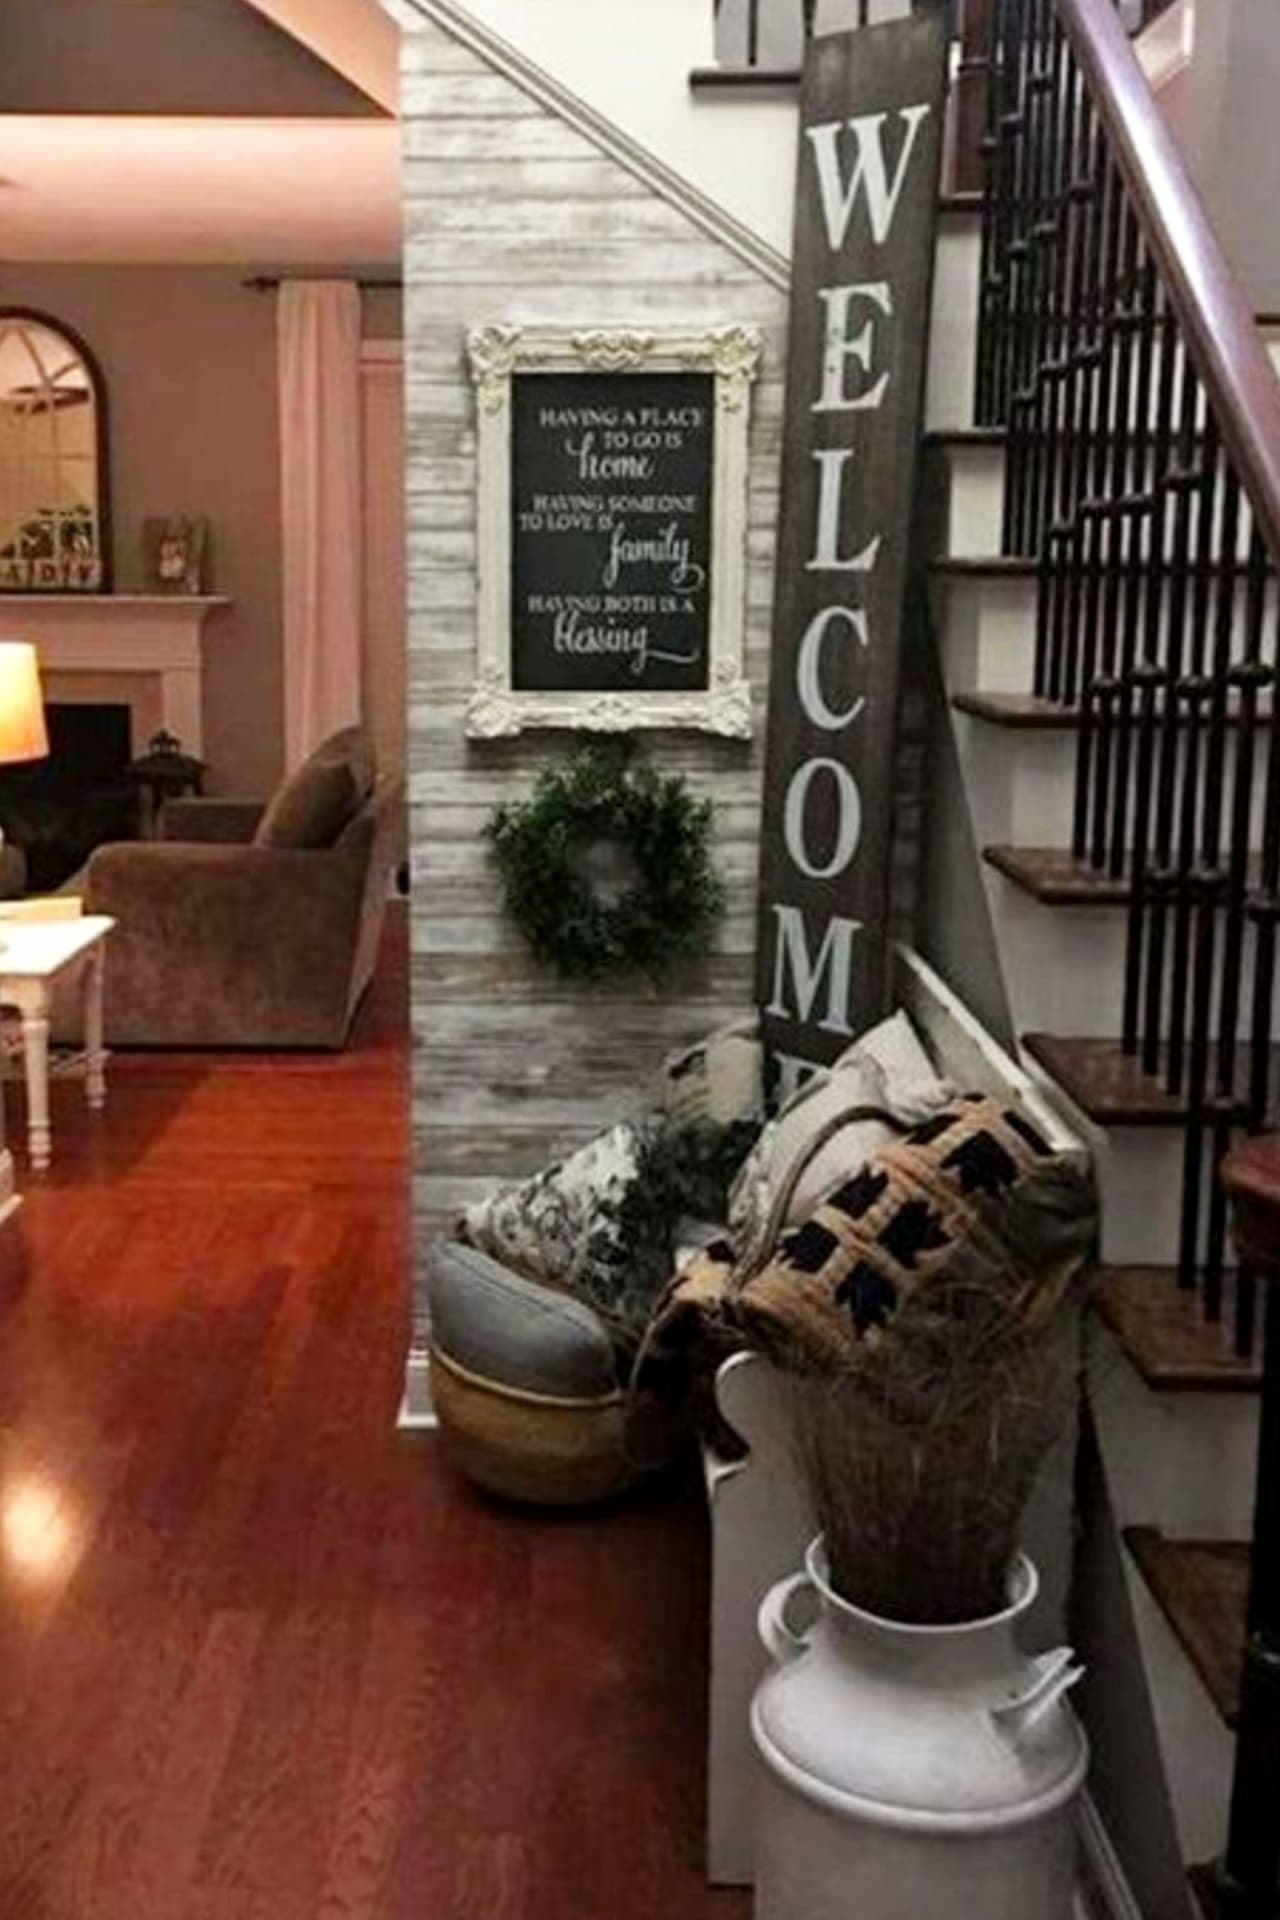 Foyer decorating ideas for an entryway with stairs - Home Decor on a Budget - Charming house decorating ideas for home decorating on a budget - best charming home decor ideas on Pinterest including french country decorating, charming and sophisticated living rooms (and gorgeous elegant small living room ideas in farmhouse cottage decor style and traditional country decor) - romantic decorating ideas with charming house decoration items for your small cozy home or apartment